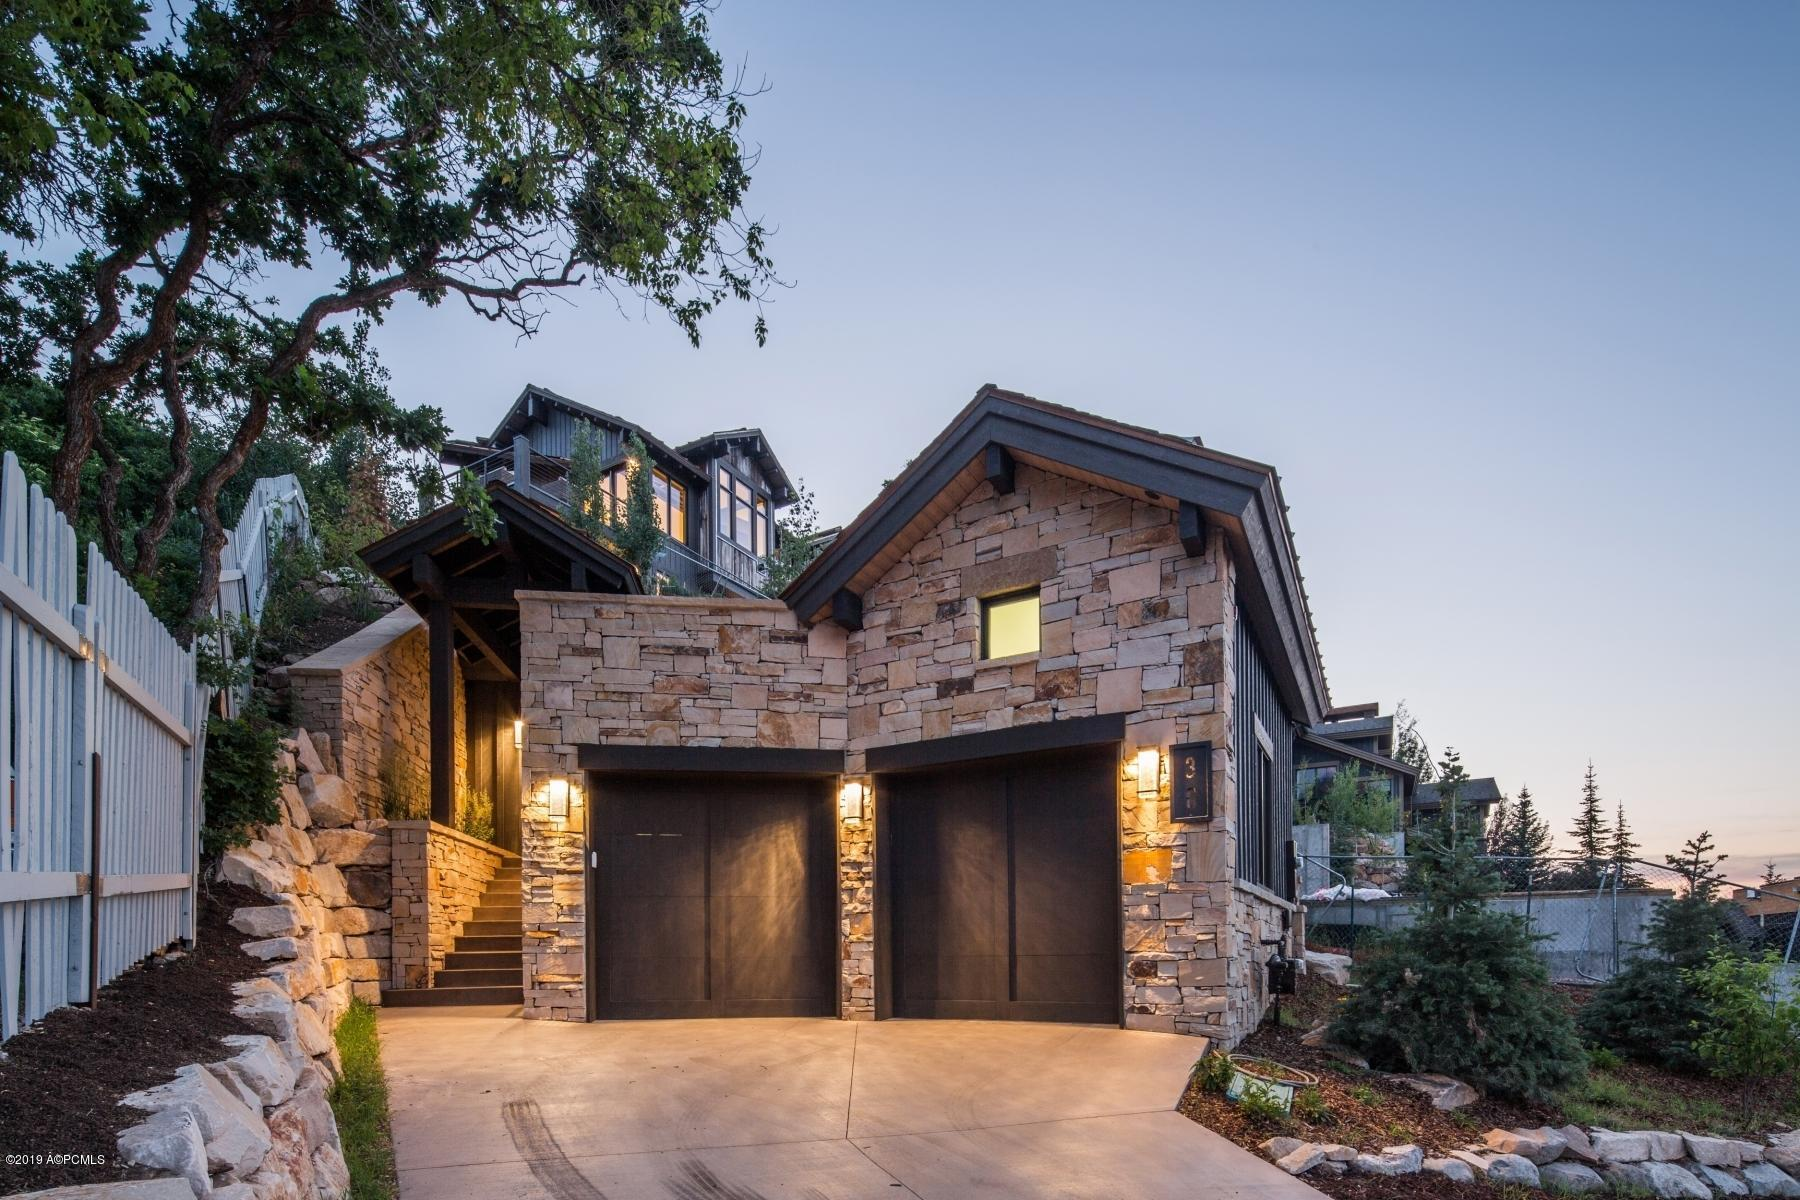 30 Sampson Avenue, Park City, Utah 84060, 4 Bedrooms Bedrooms, ,5 BathroomsBathrooms,Single Family,For Sale,Sampson,20190109112430415765000000